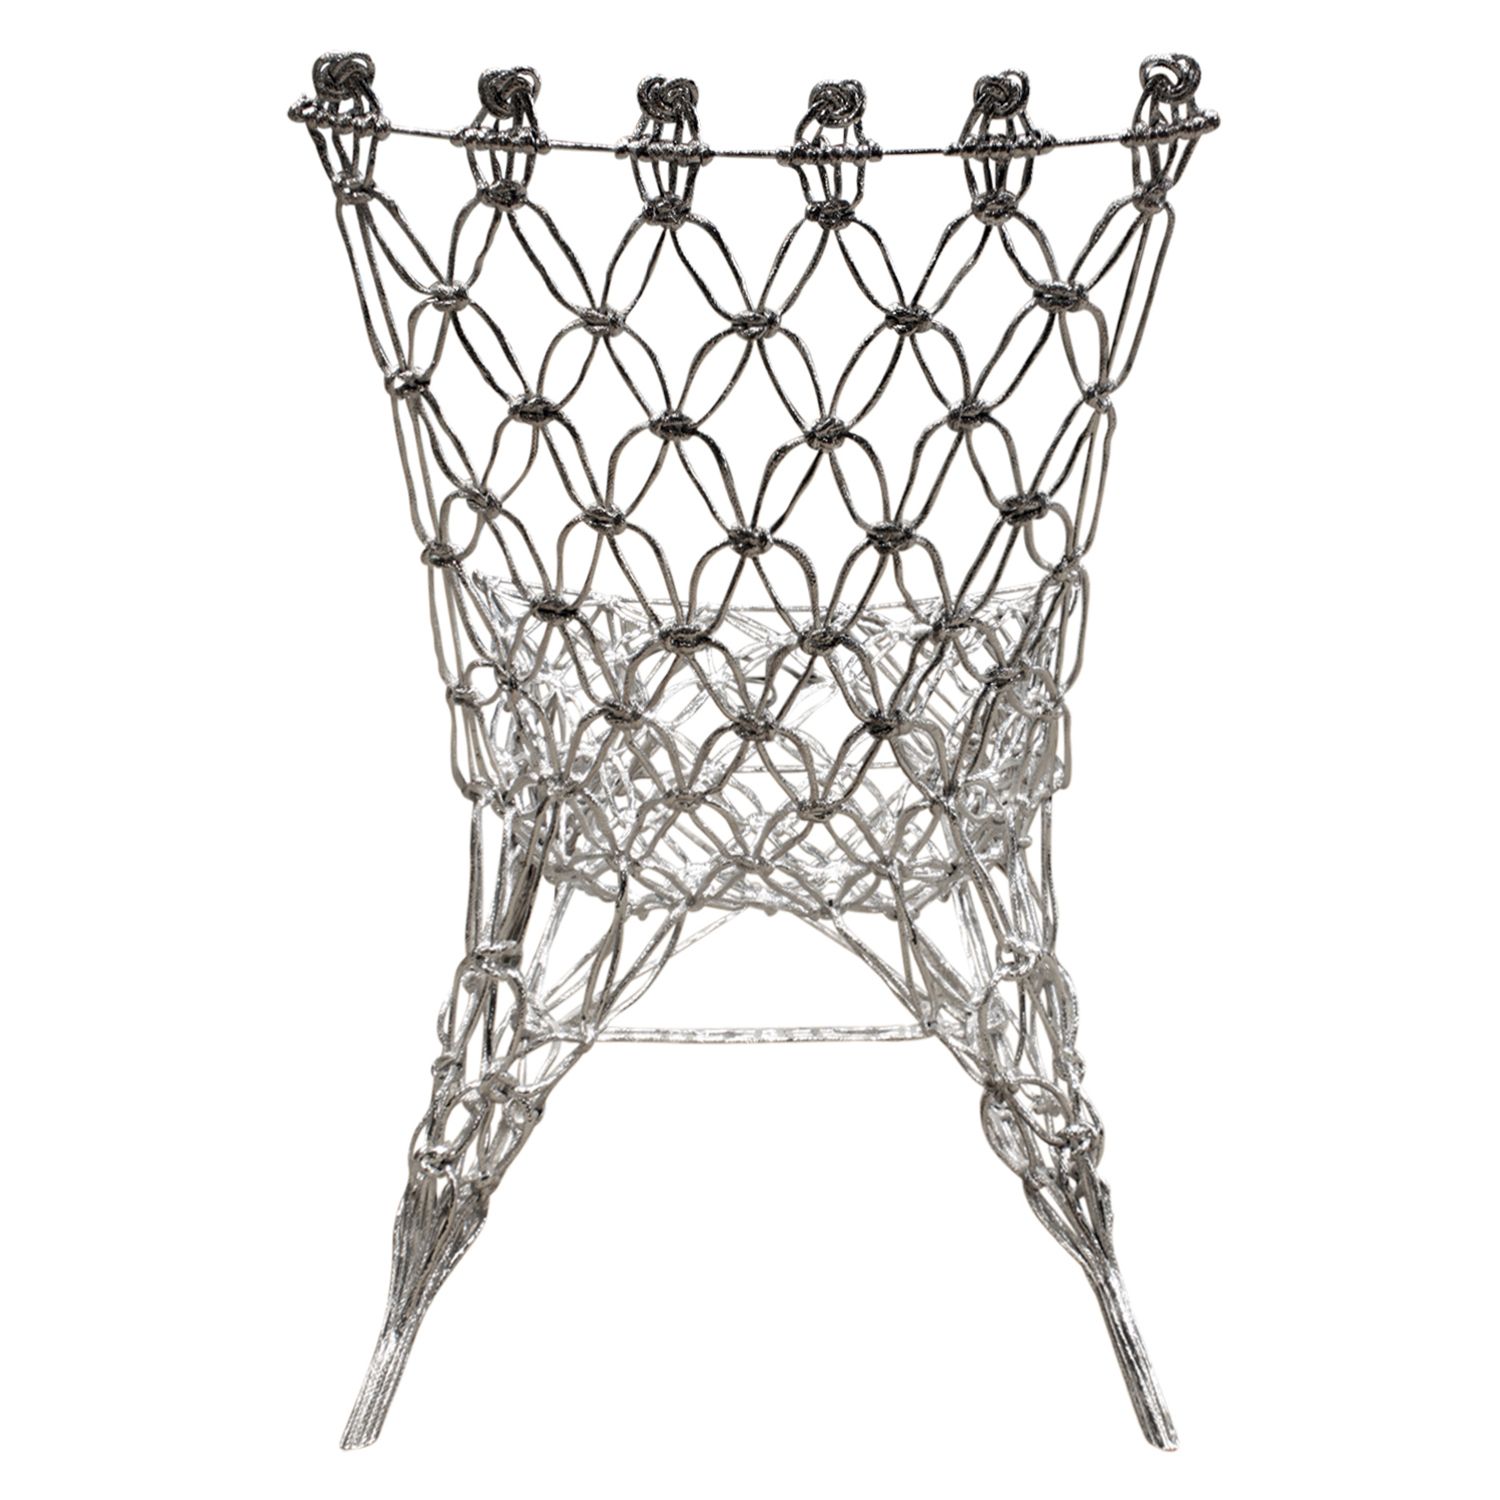 Wanders 65 knotted rope chrome loungechair97 bak.jpg